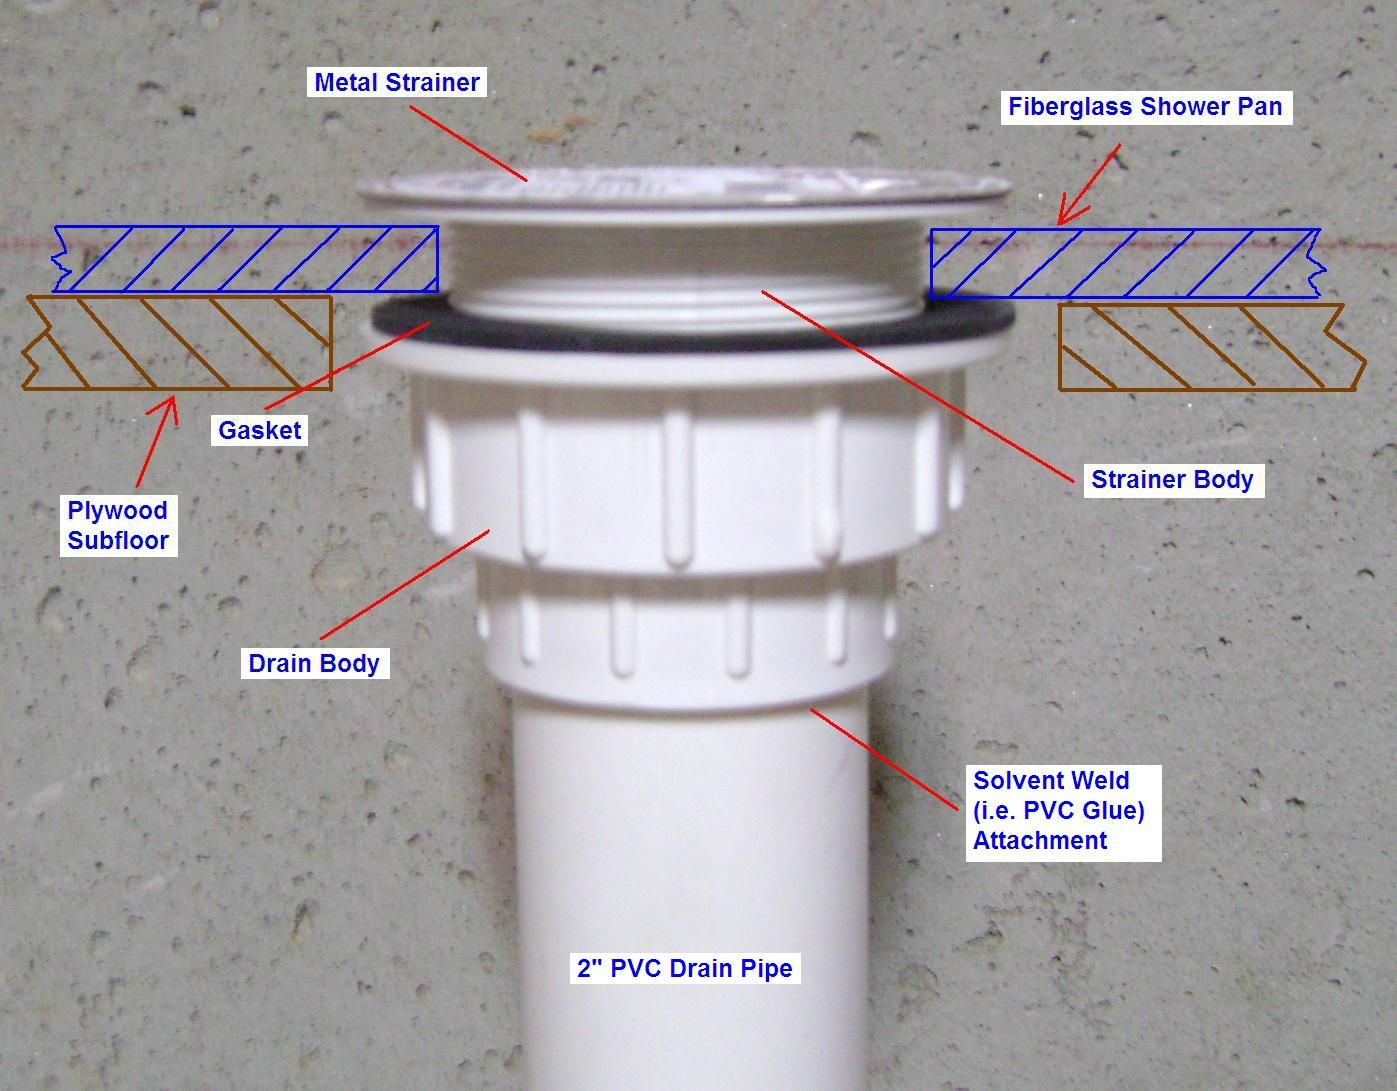 How to fix a leaky shower drain photo tutorial water stain on the ceiling find the leak disassemble the shower drain and replace the gasket